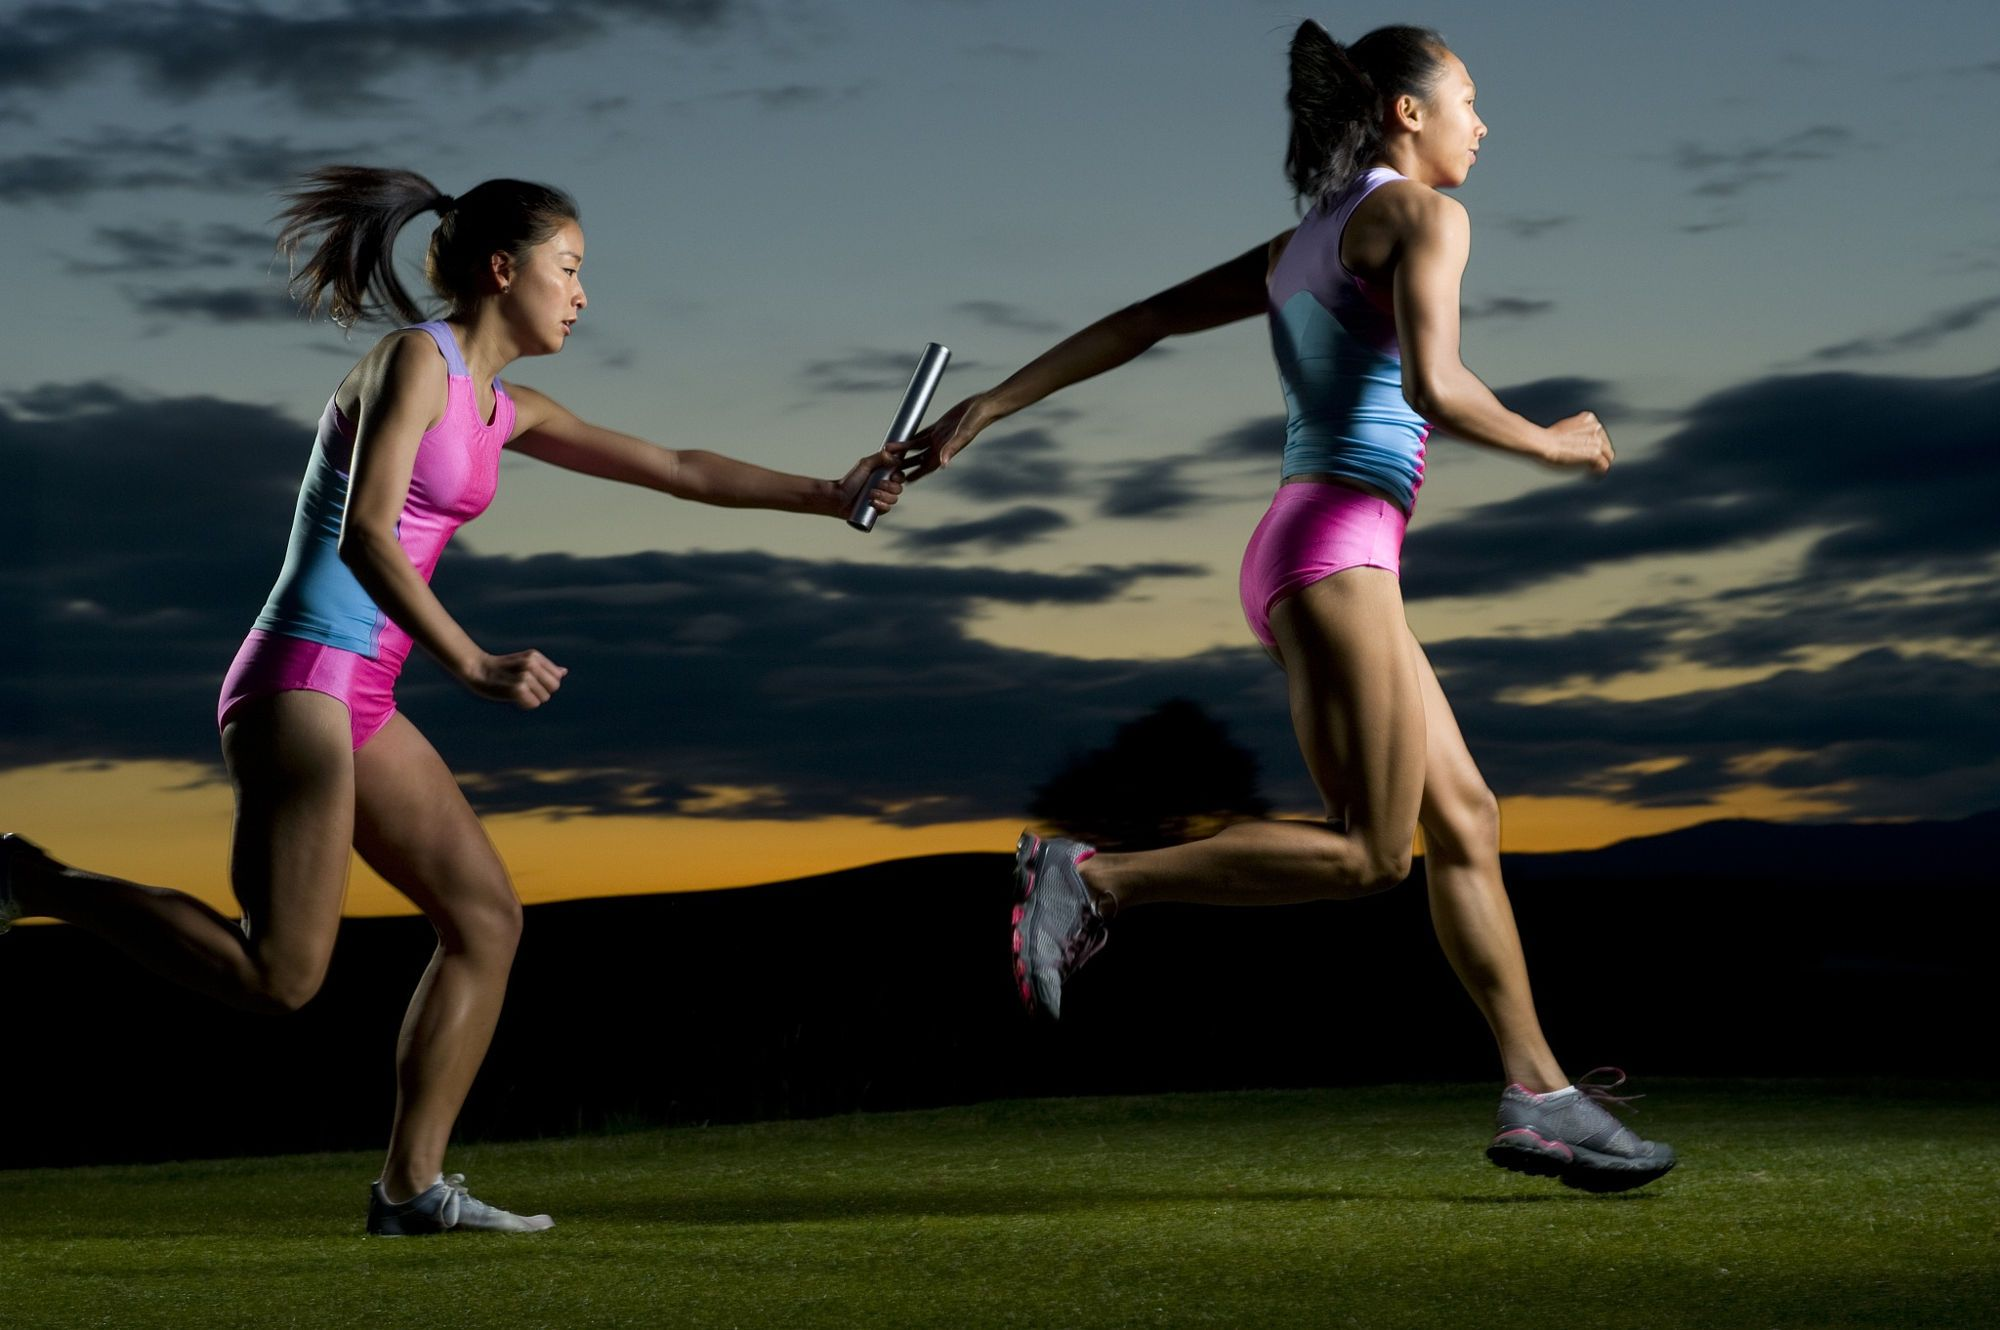 Relay runners passing baton in competition | Sport portraits, Competition, Relay